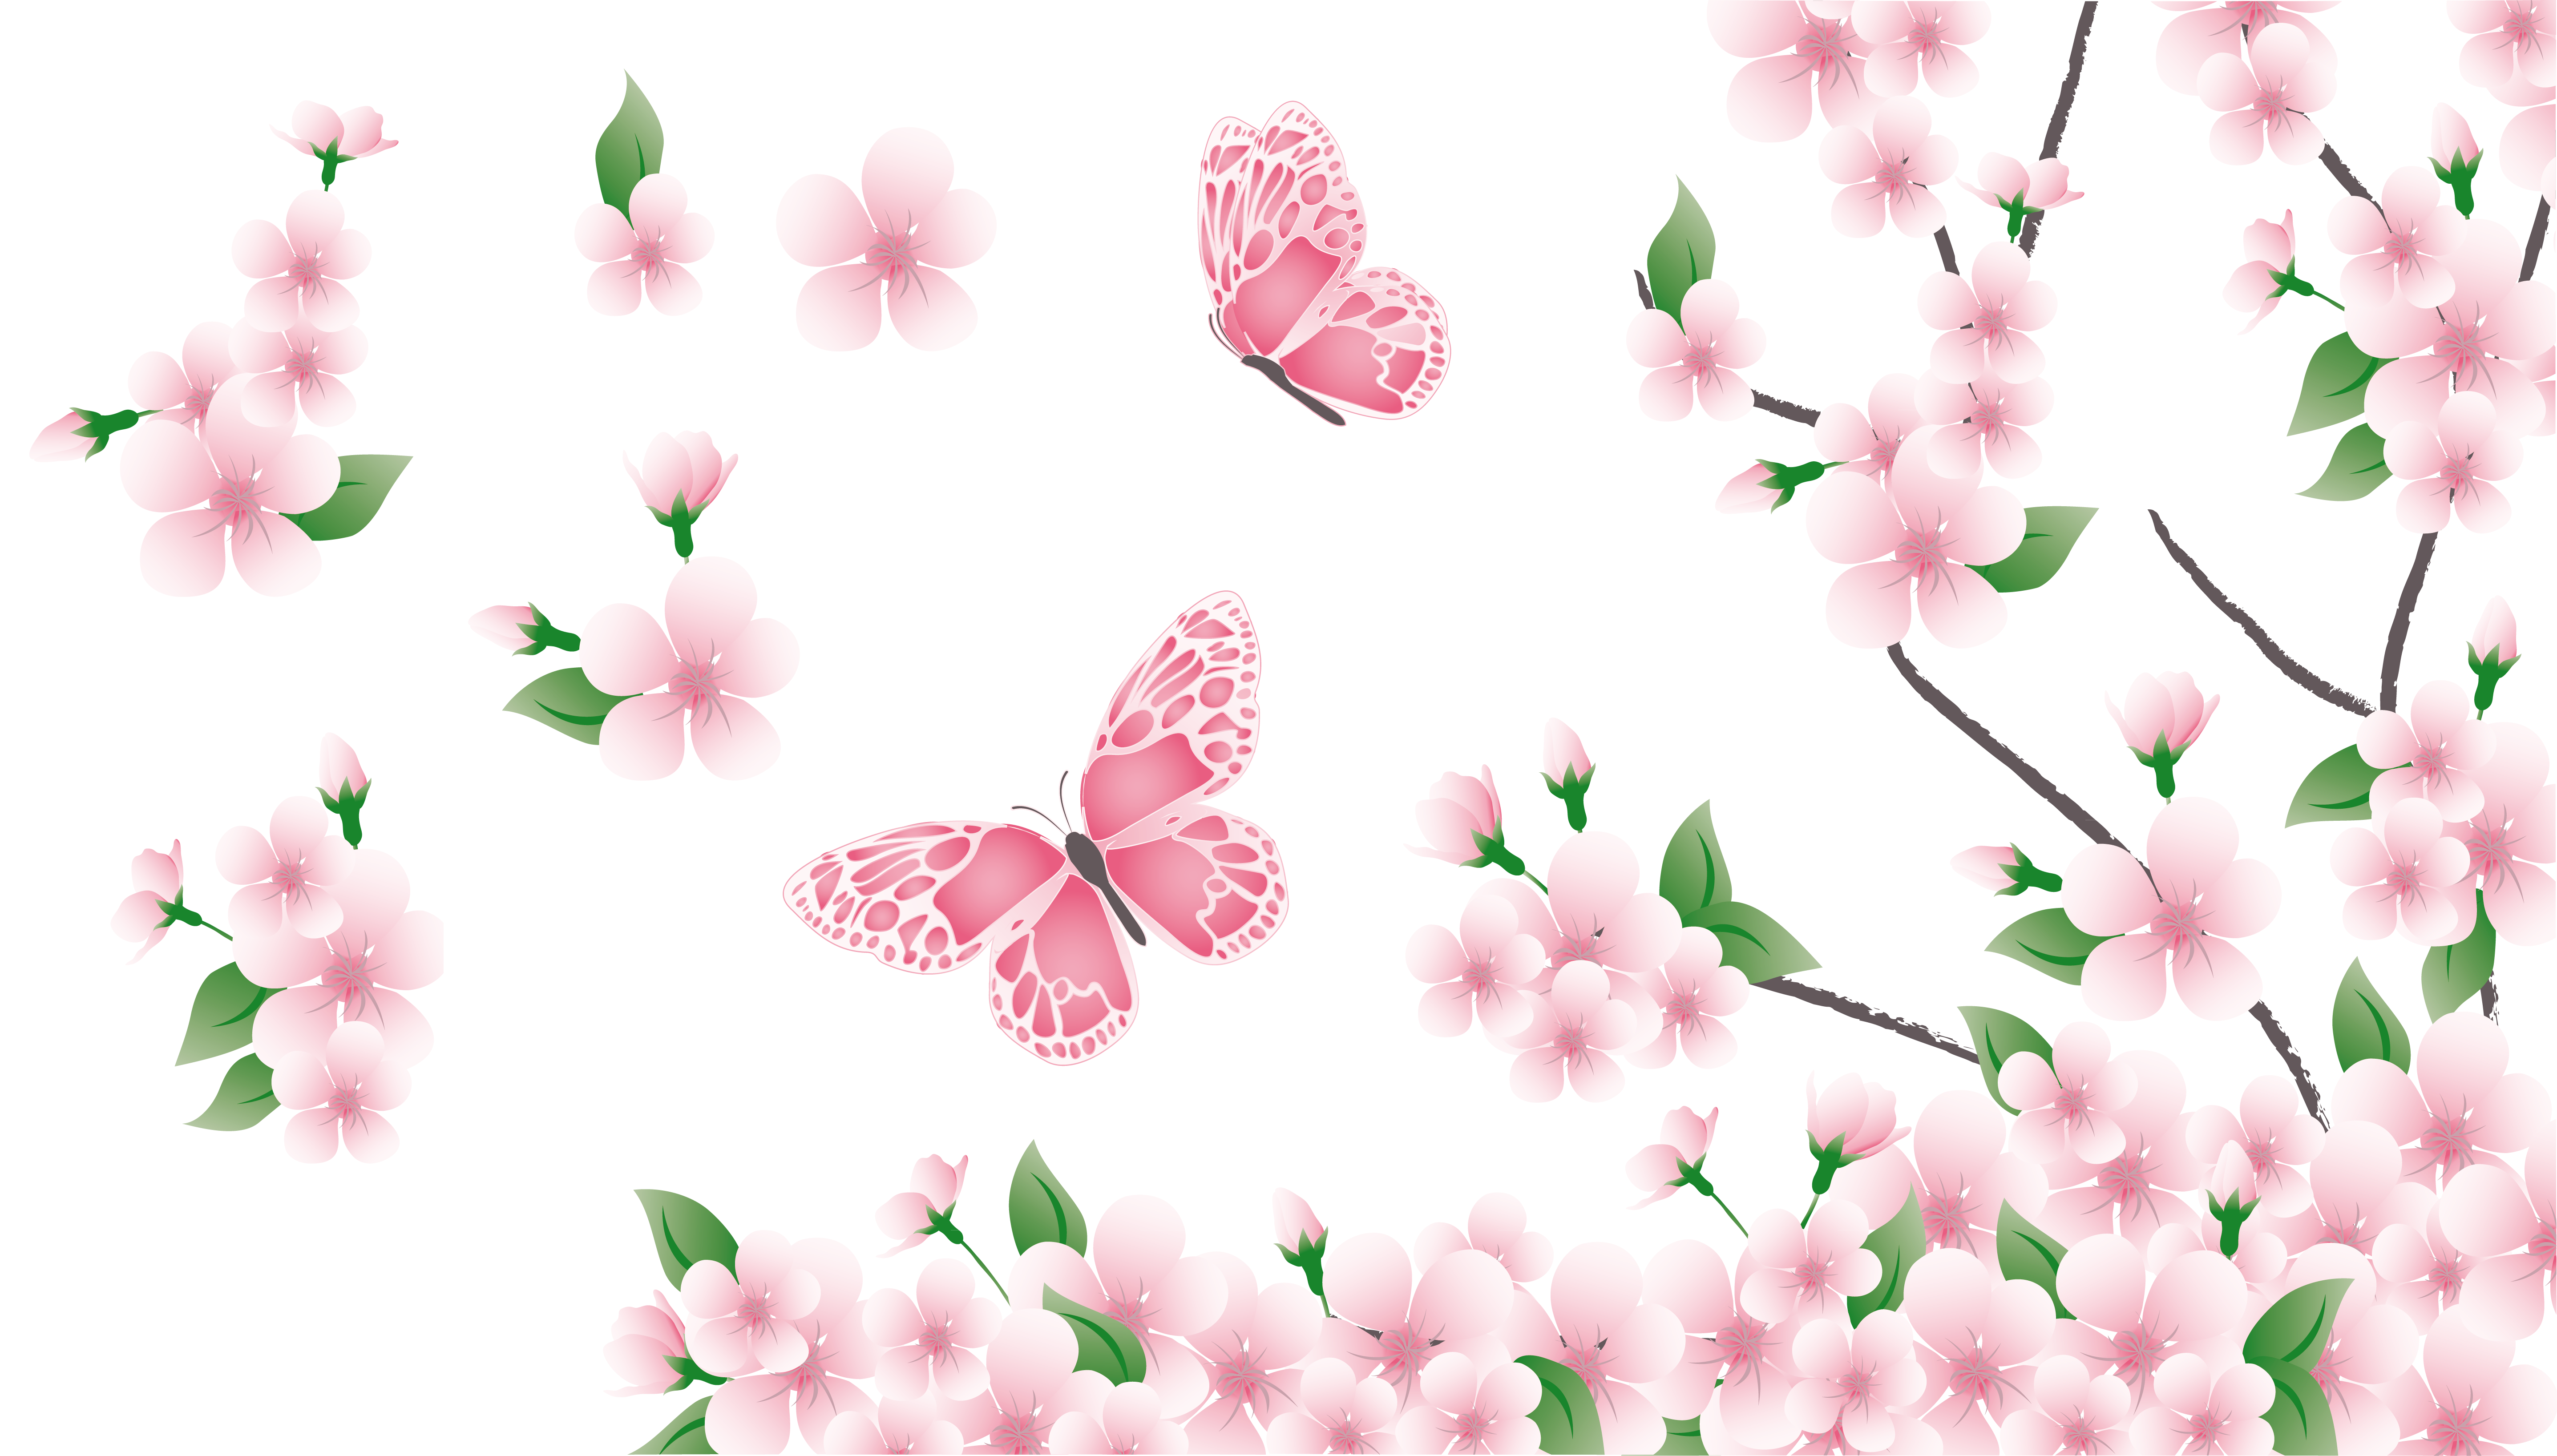 Clipart flowers and butterflies png. Spring branch with pink